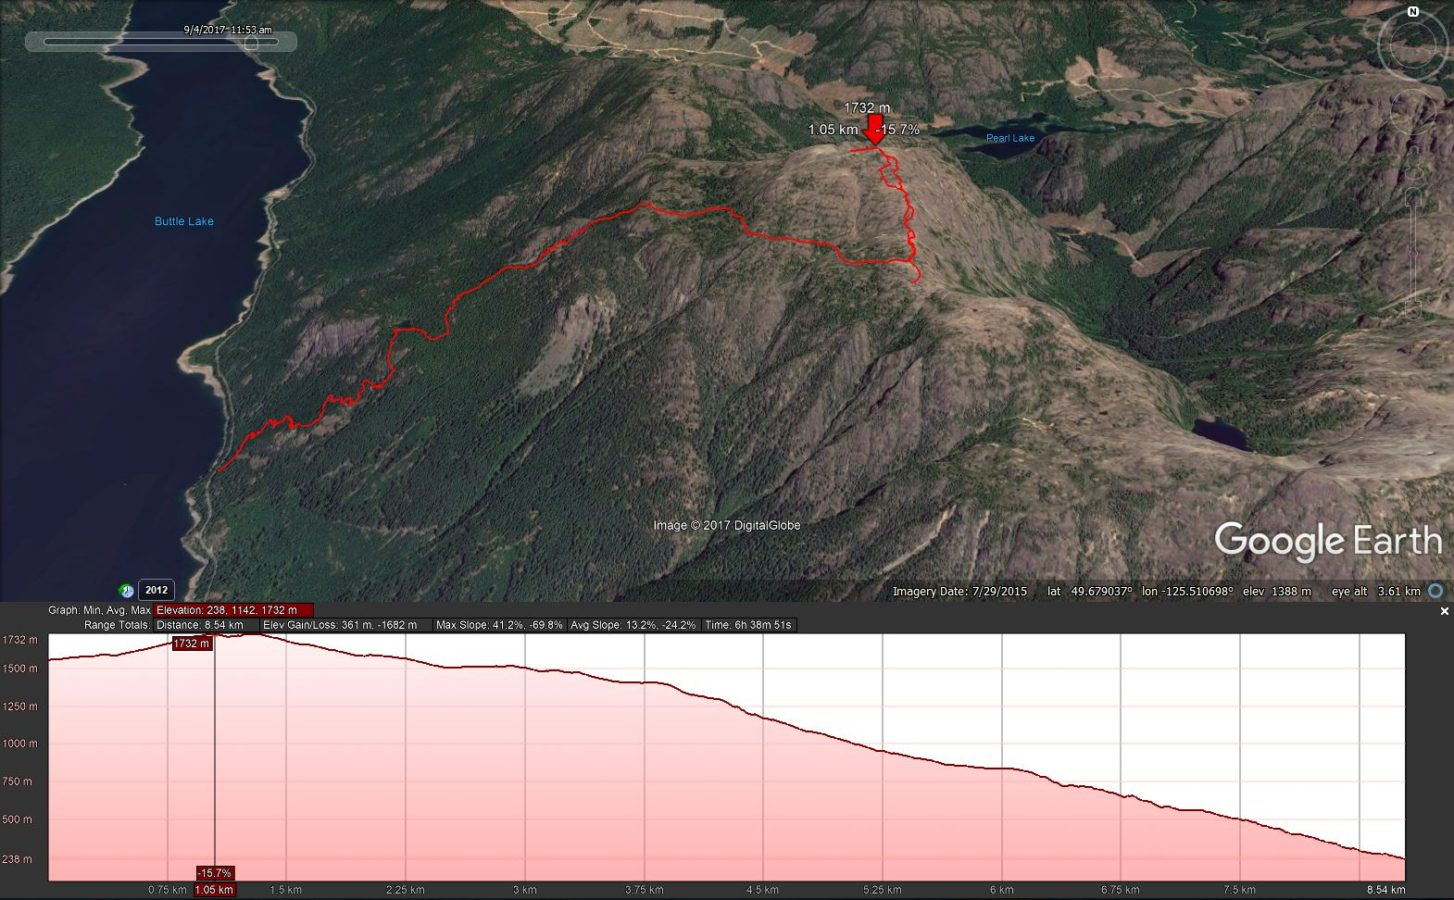 NW Peak and Descent to Buttle Lake - Google Earth Track